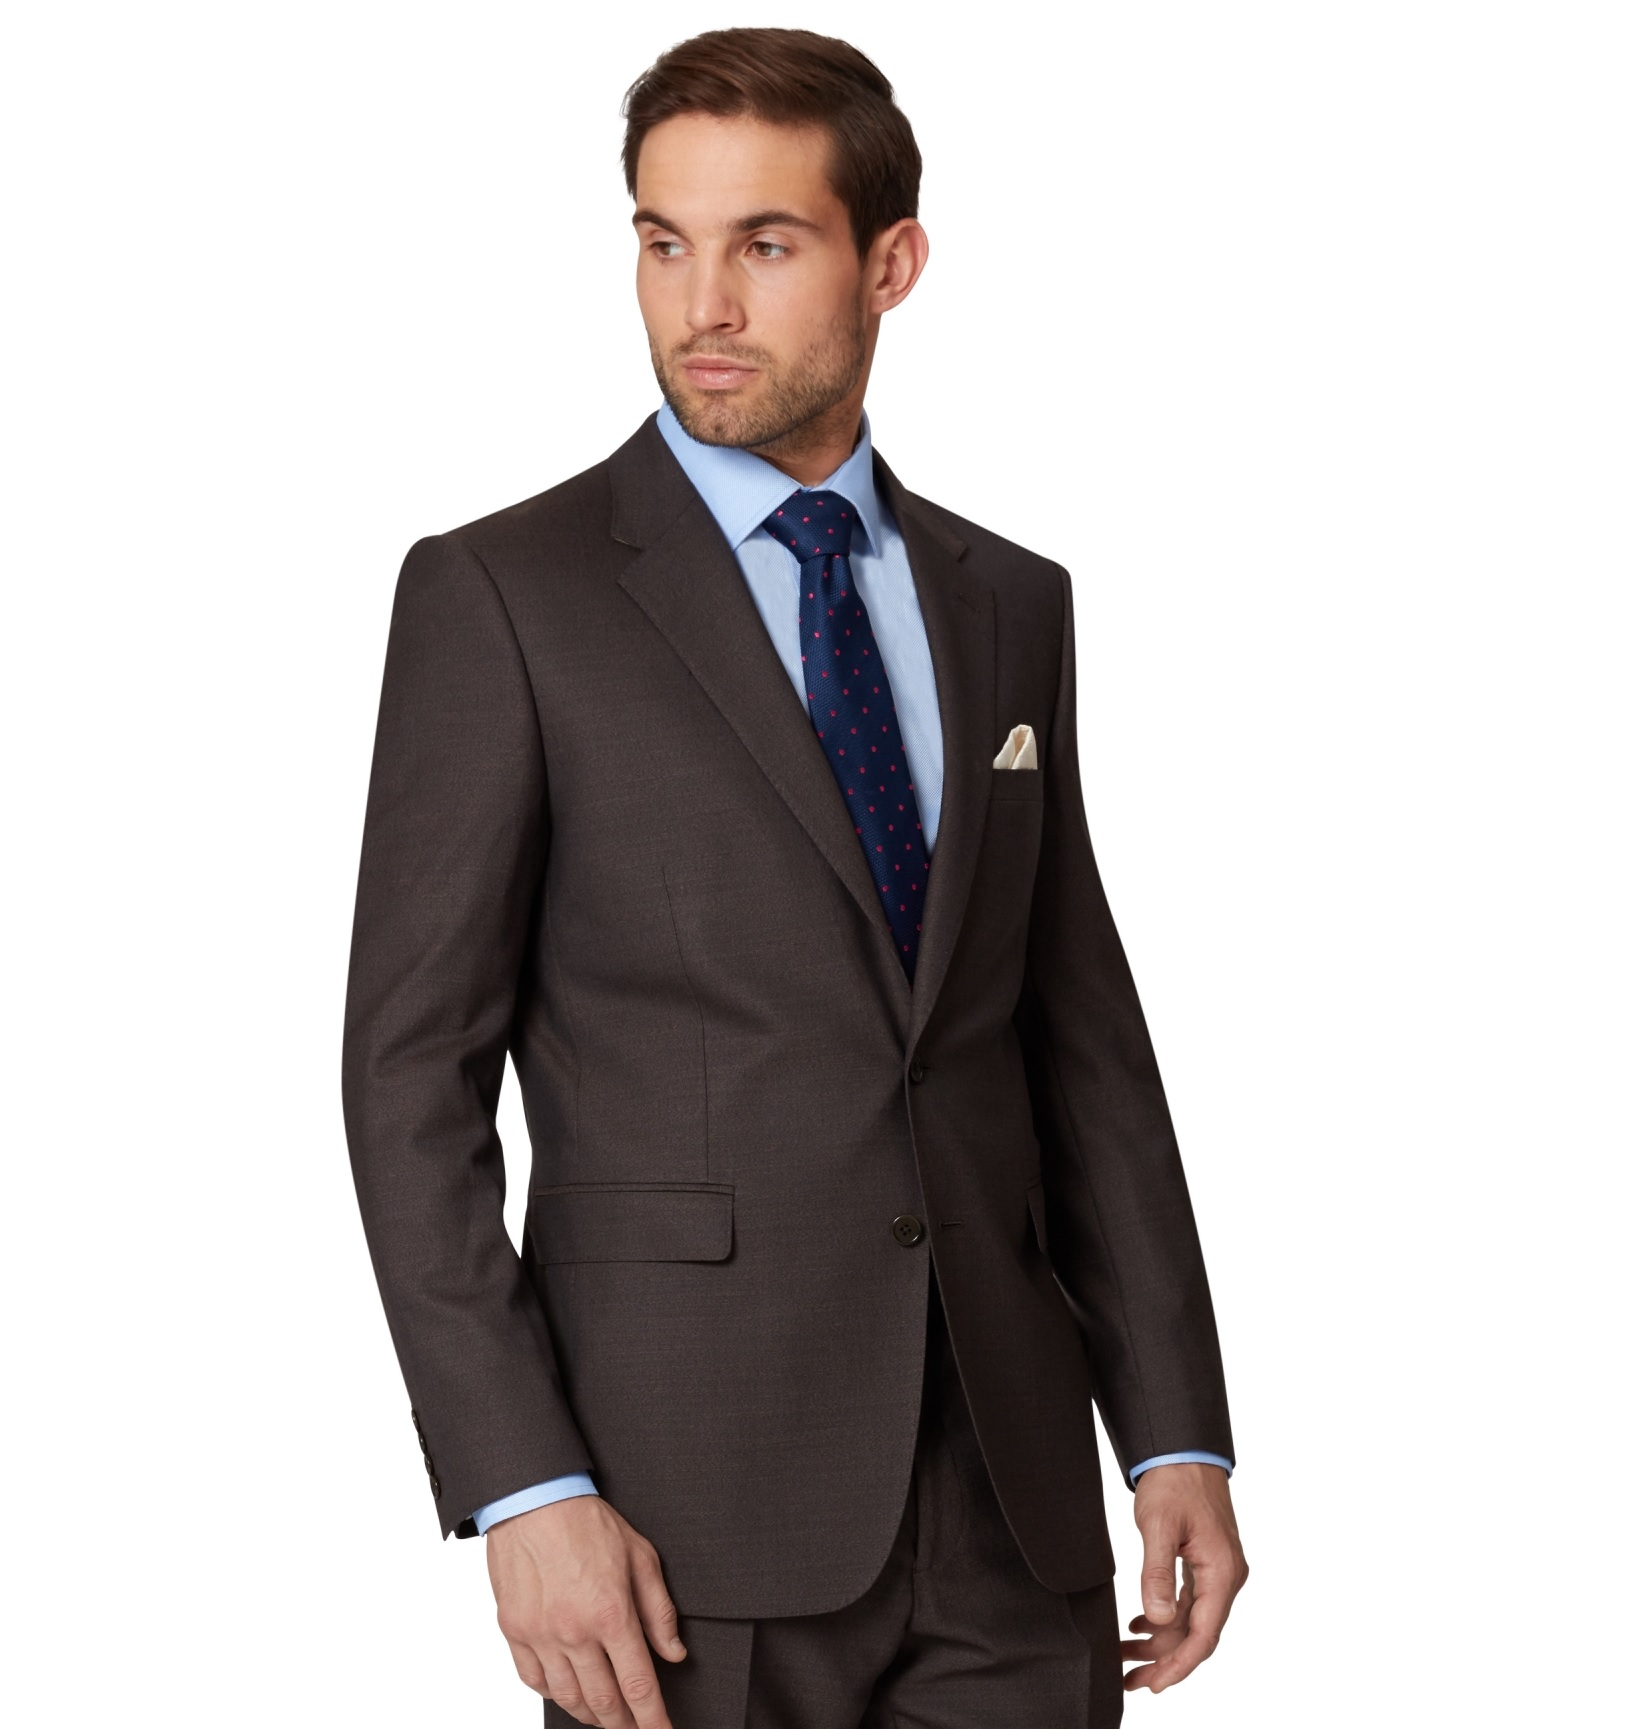 Mens Brown Suit Jacket - Go Suits